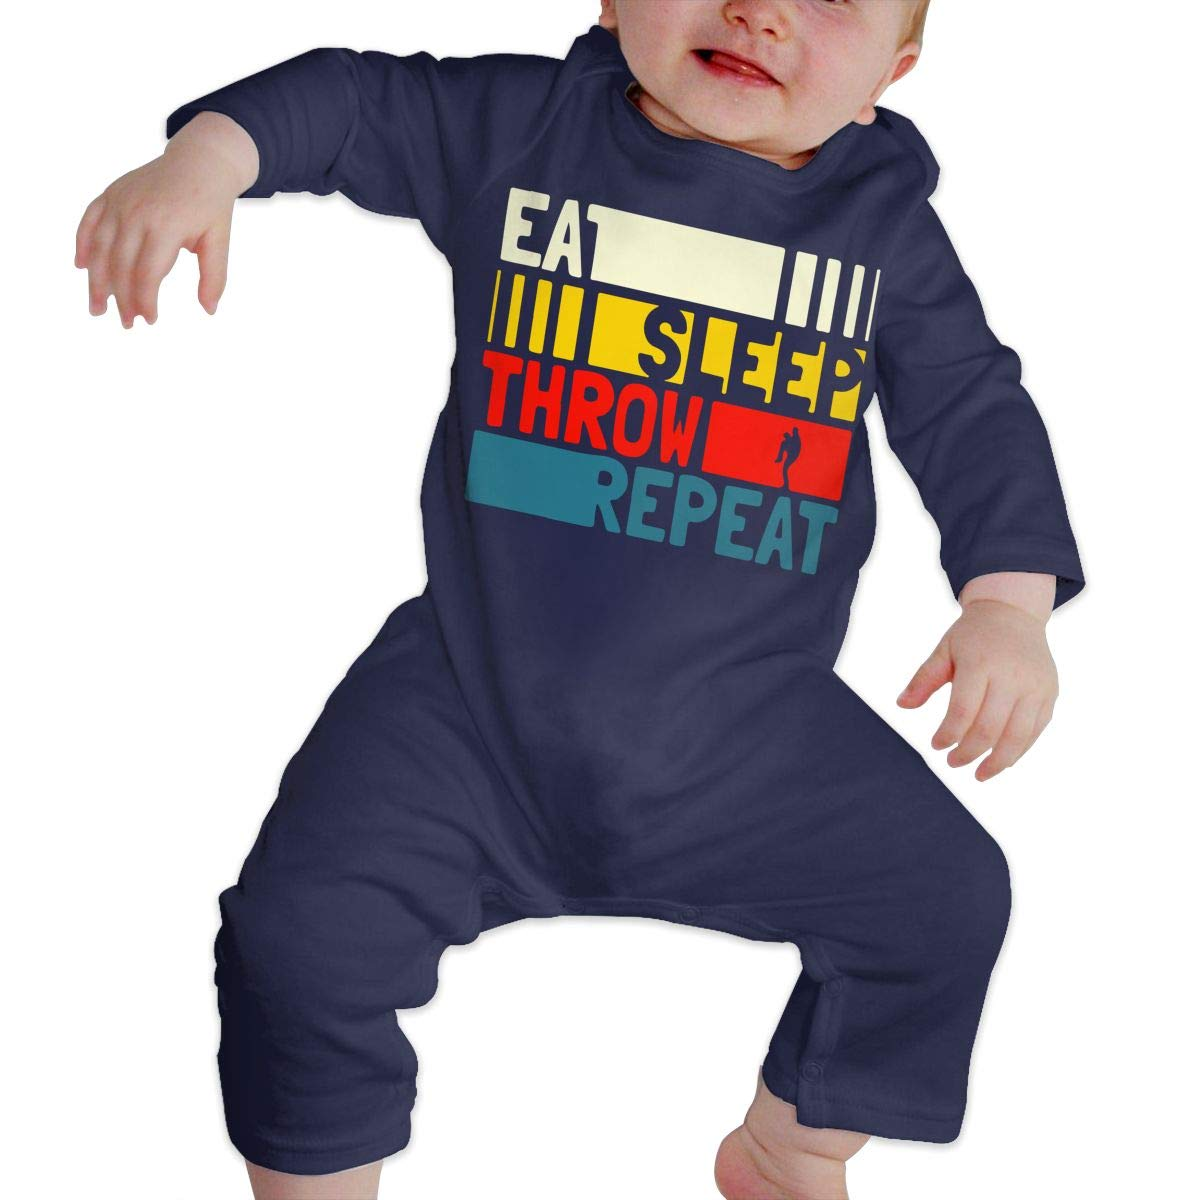 Mri-le1 Baby Girl Coverall Eat Sleep Throw Repeat Baby Rompers